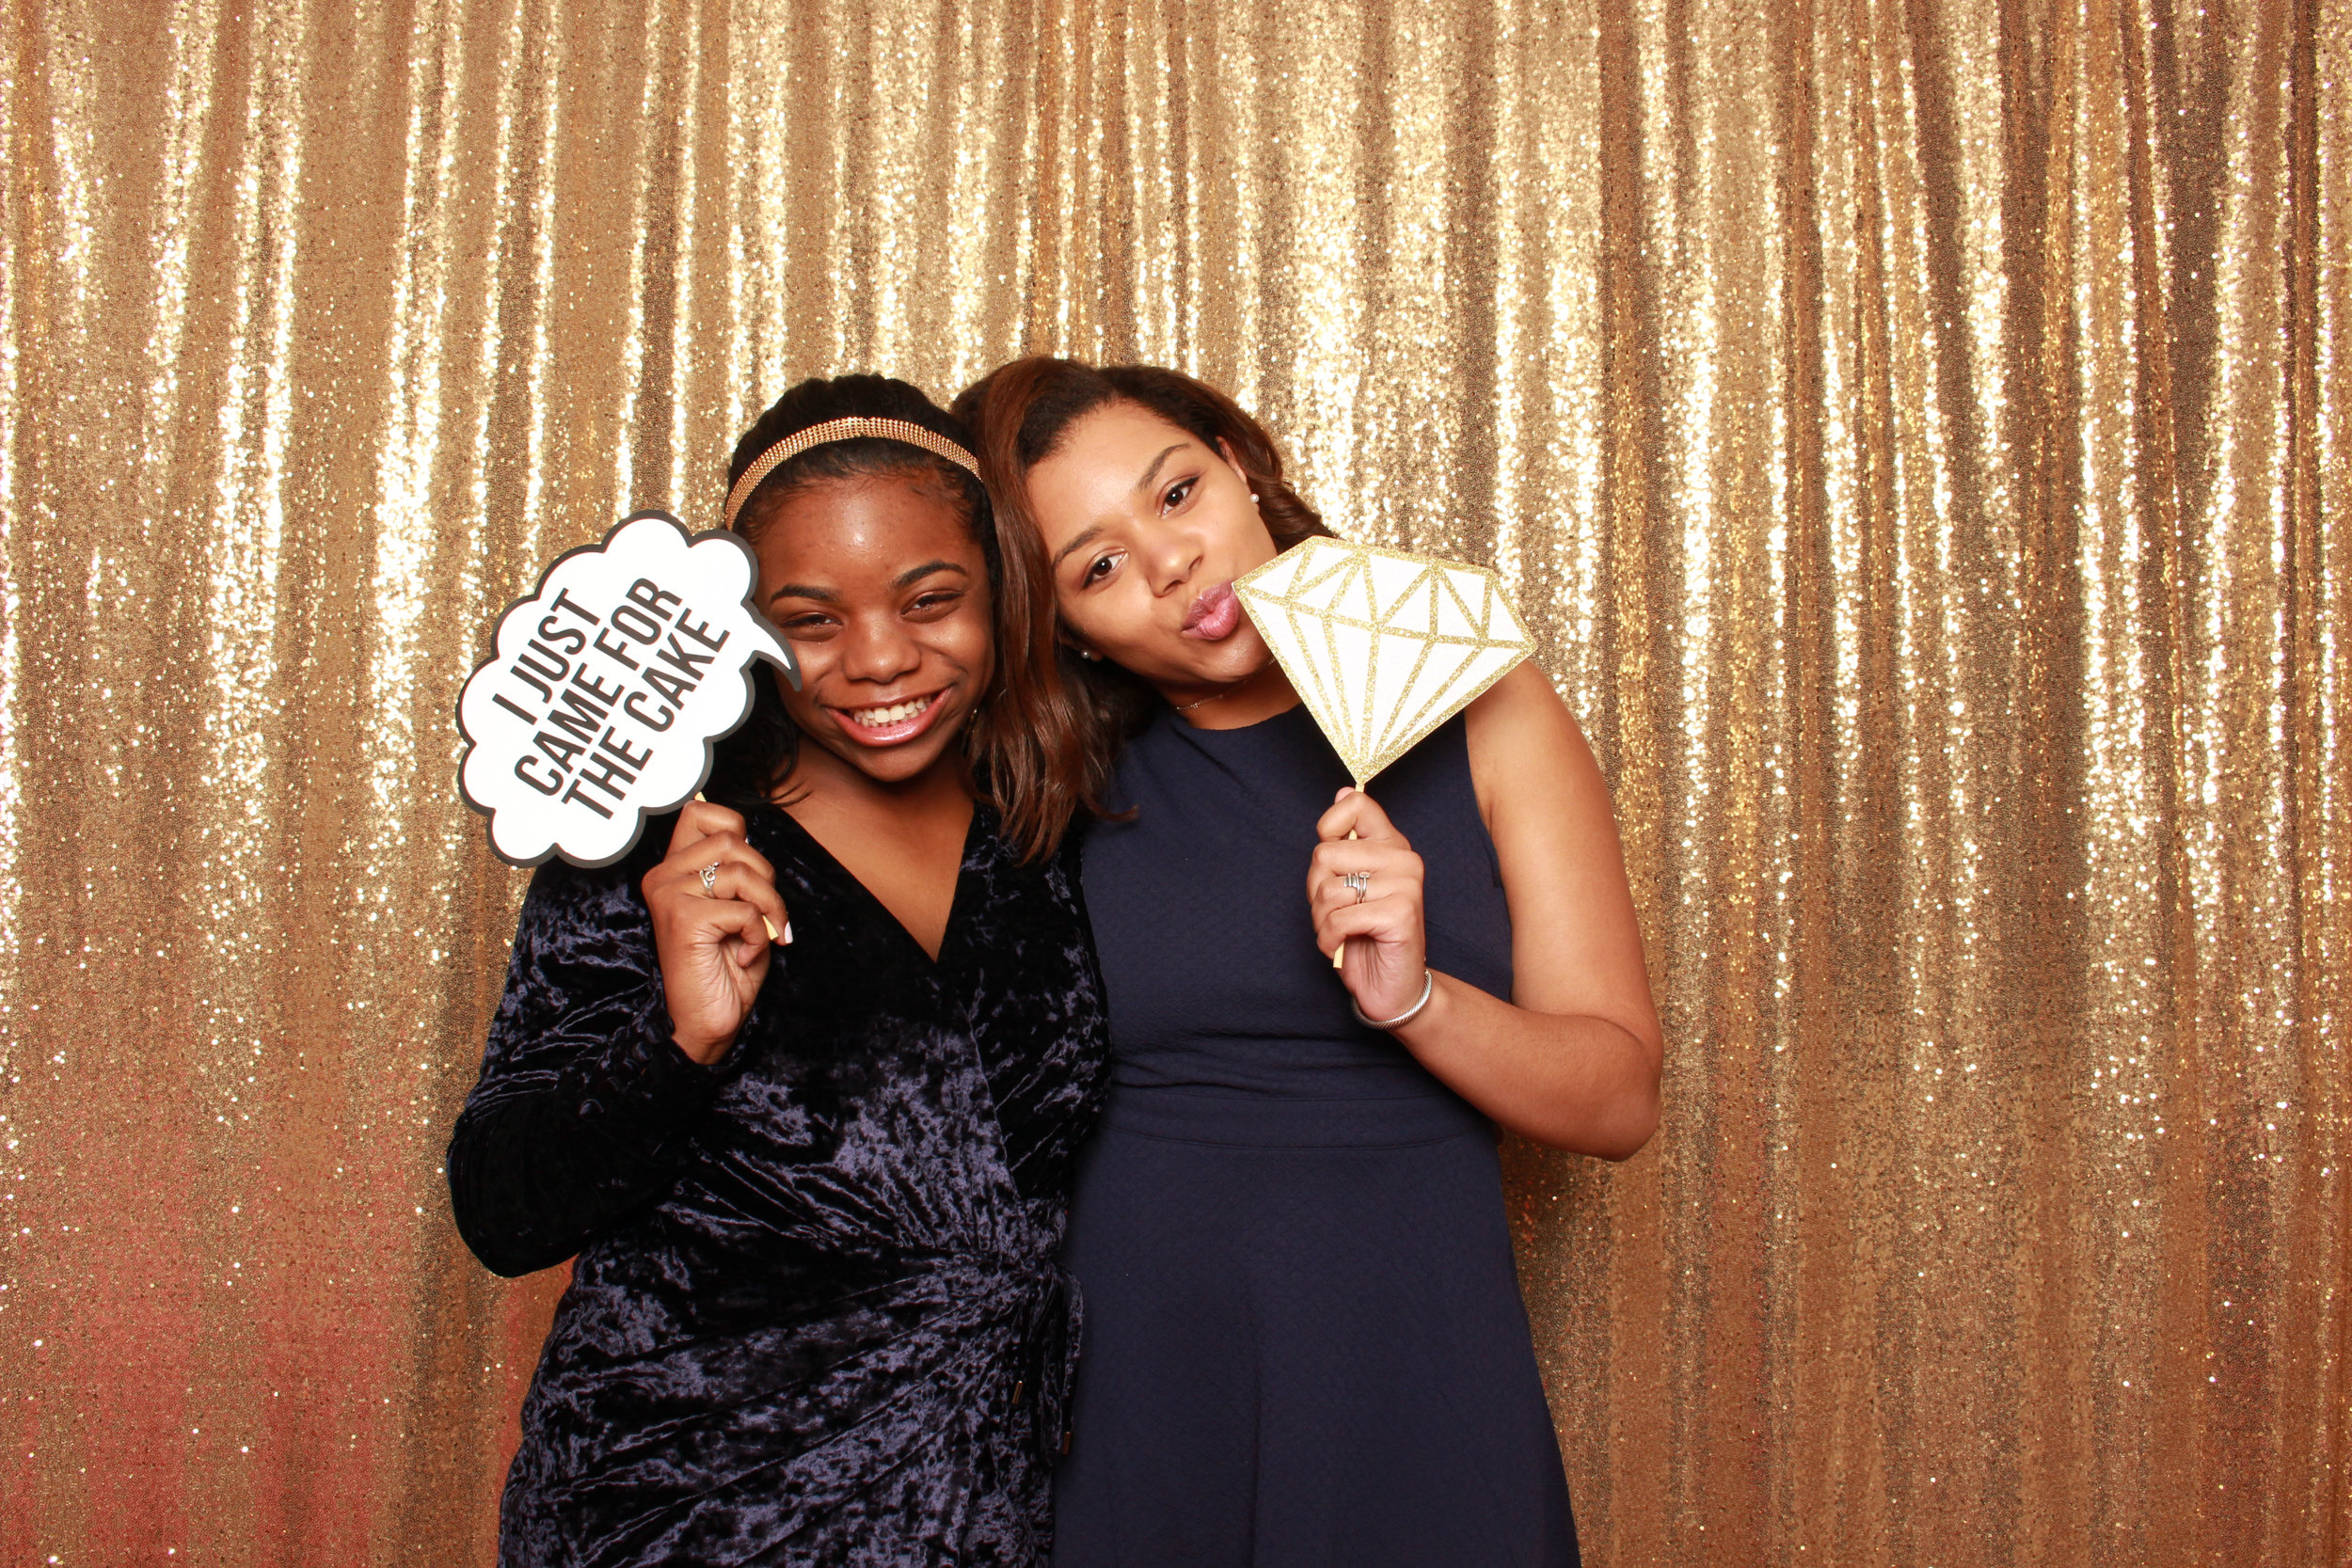 austin photo booth rental - Oh Happy Day Booth-13.jpg